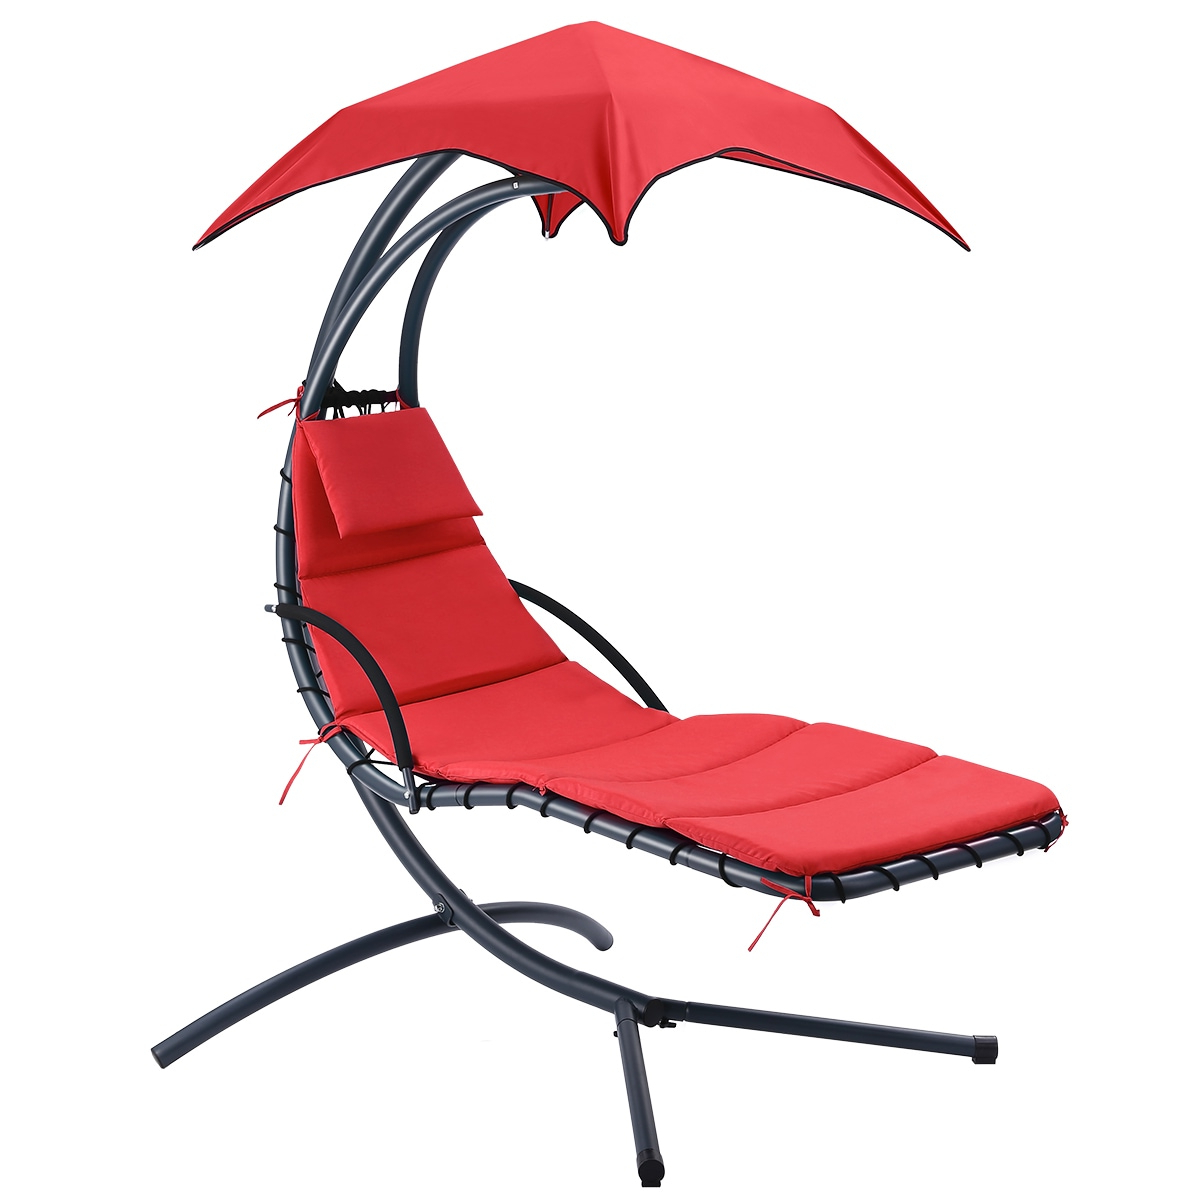 Outdoor Swing Glider Chairs With Powder Coated Steel Frame Intended For Favorite Hanging Chaise Lounge Chair Outdoor Indoor Hammock Chair (View 25 of 25)